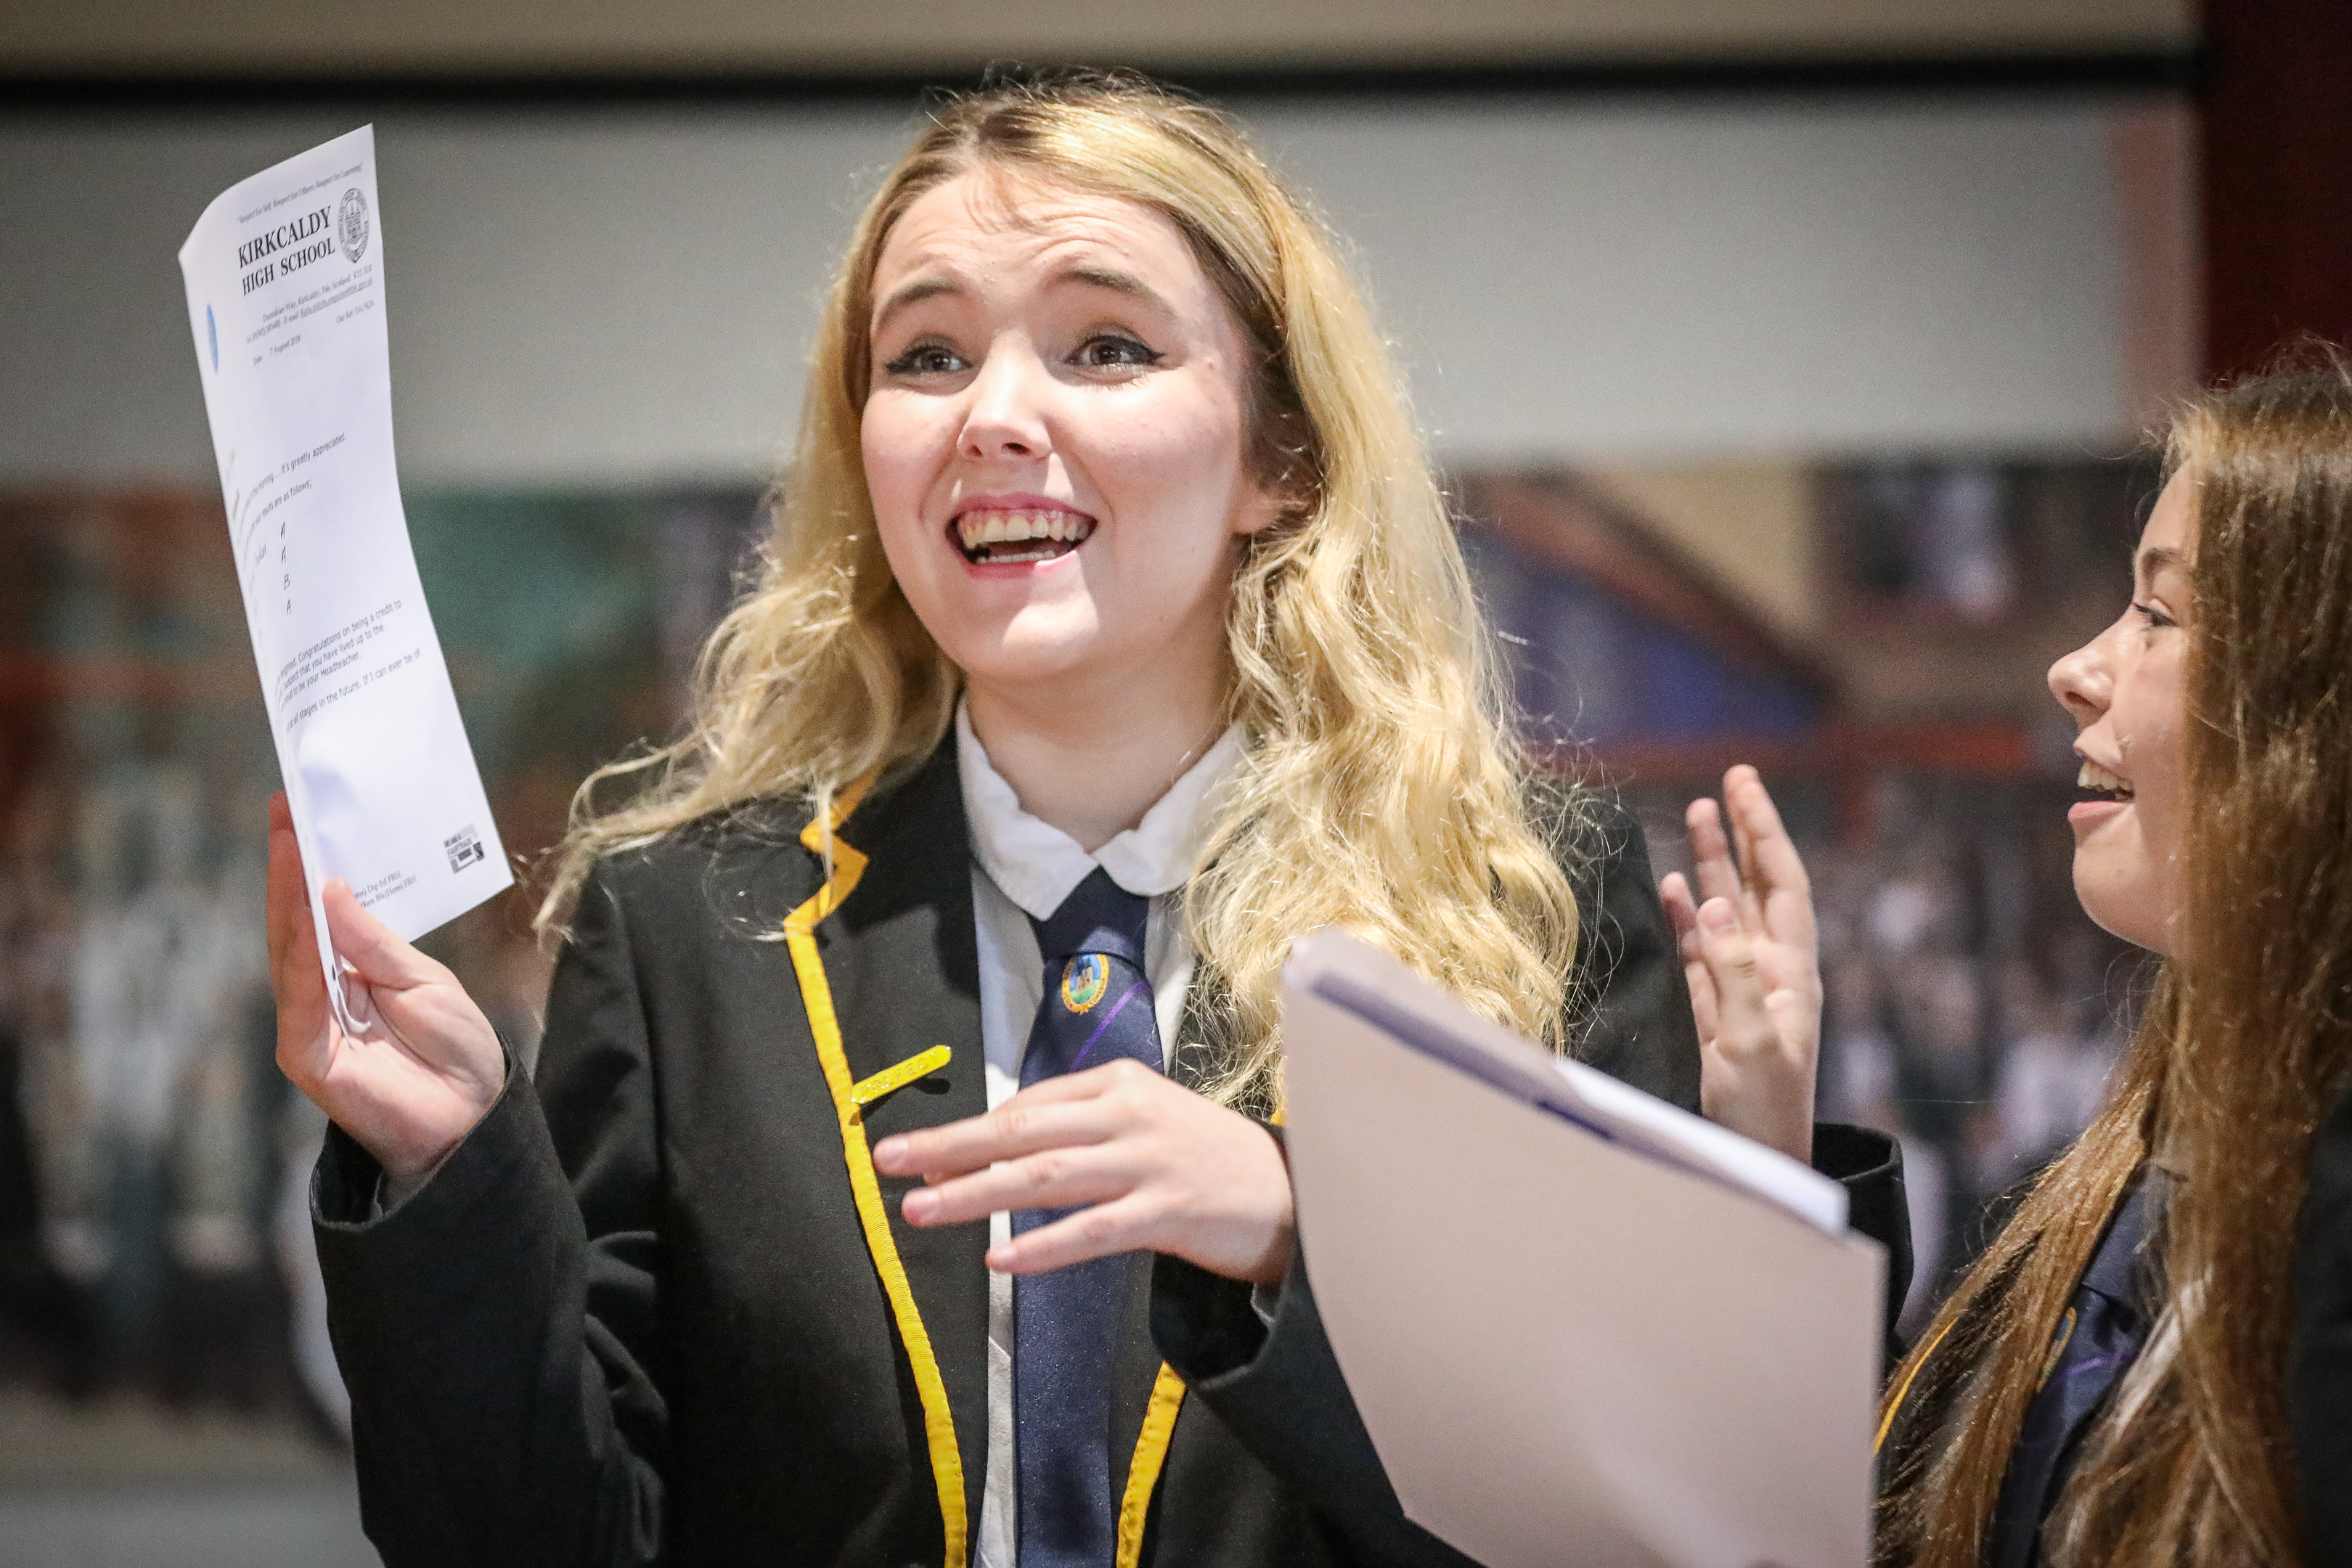 Taylor Williams reacting after opening her results.